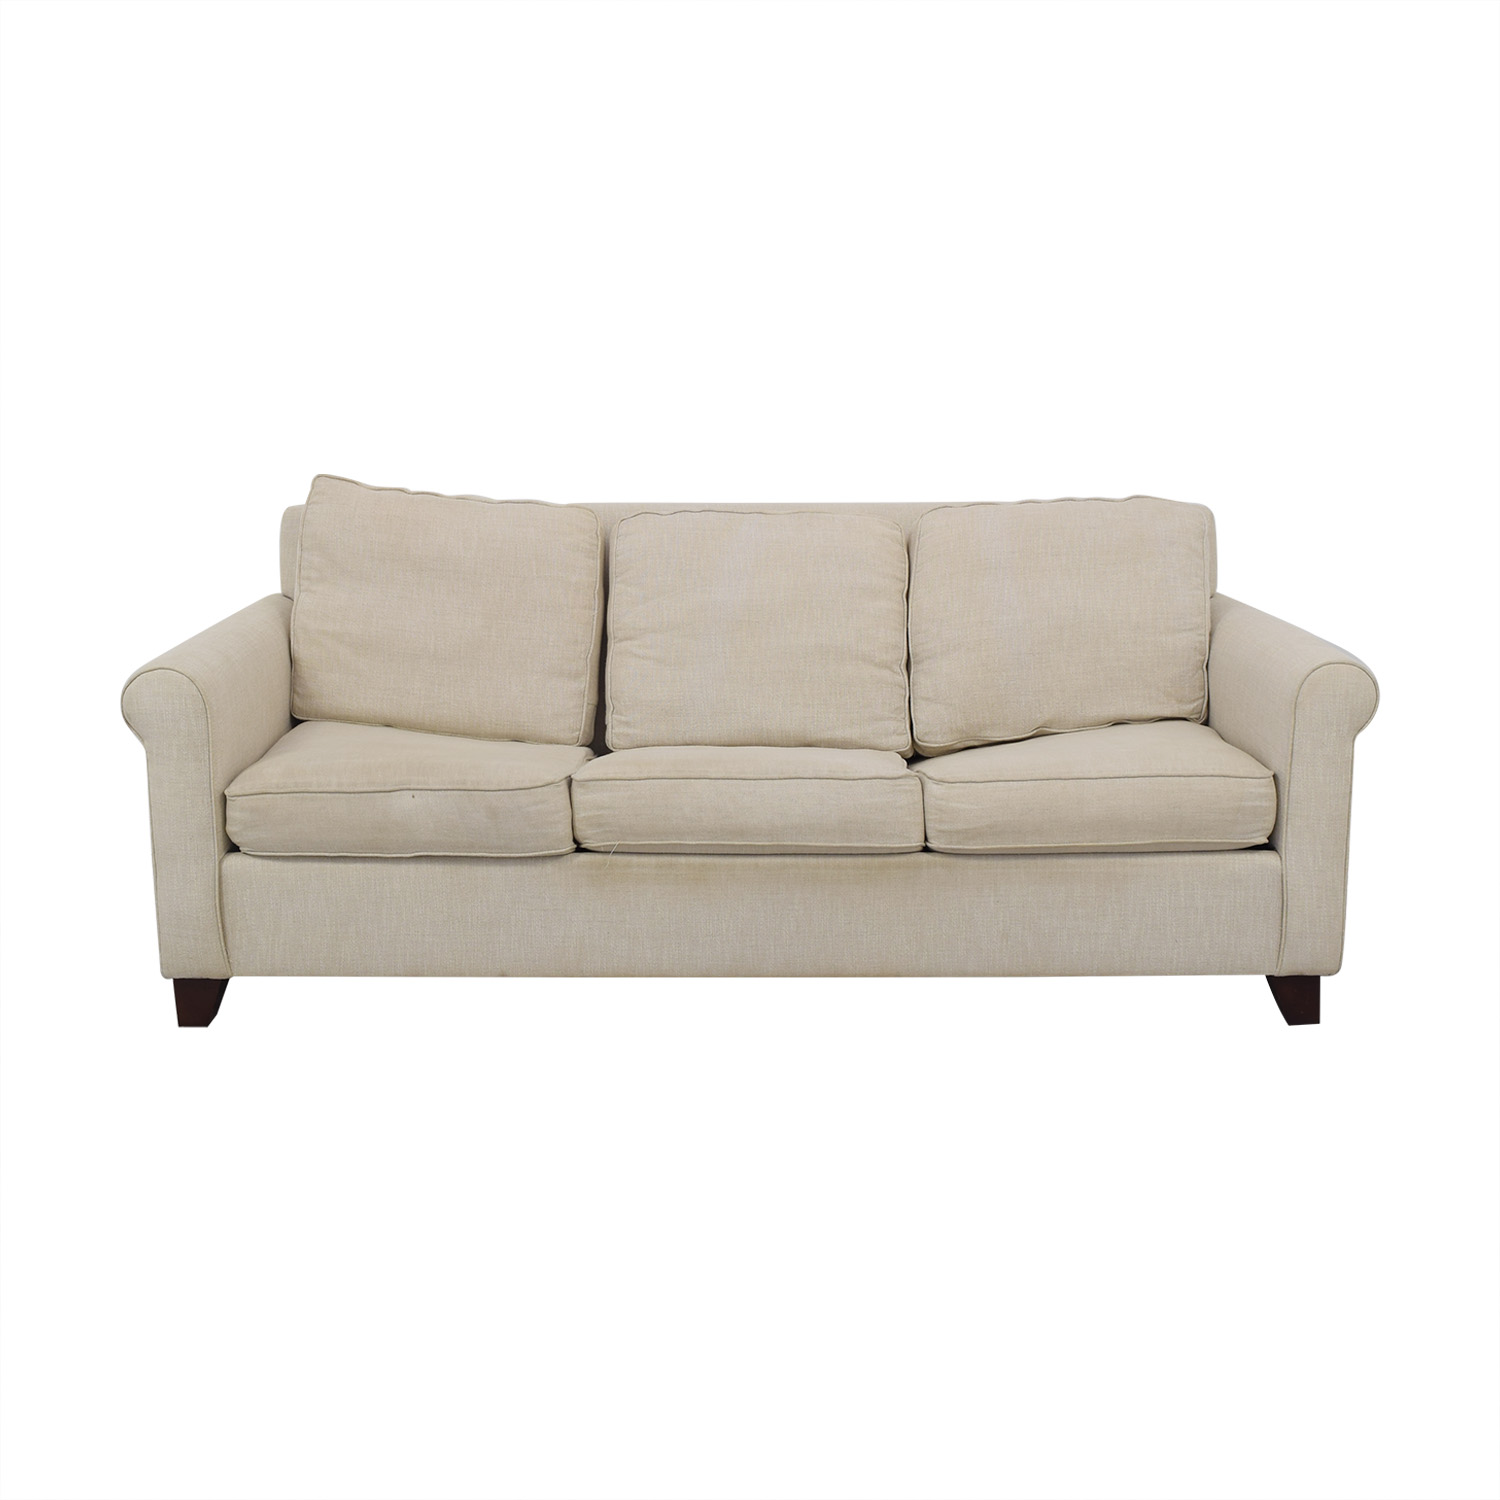 West Elm West Elm Cameron Roll Arm Upholstered Sleeper Sofa nj